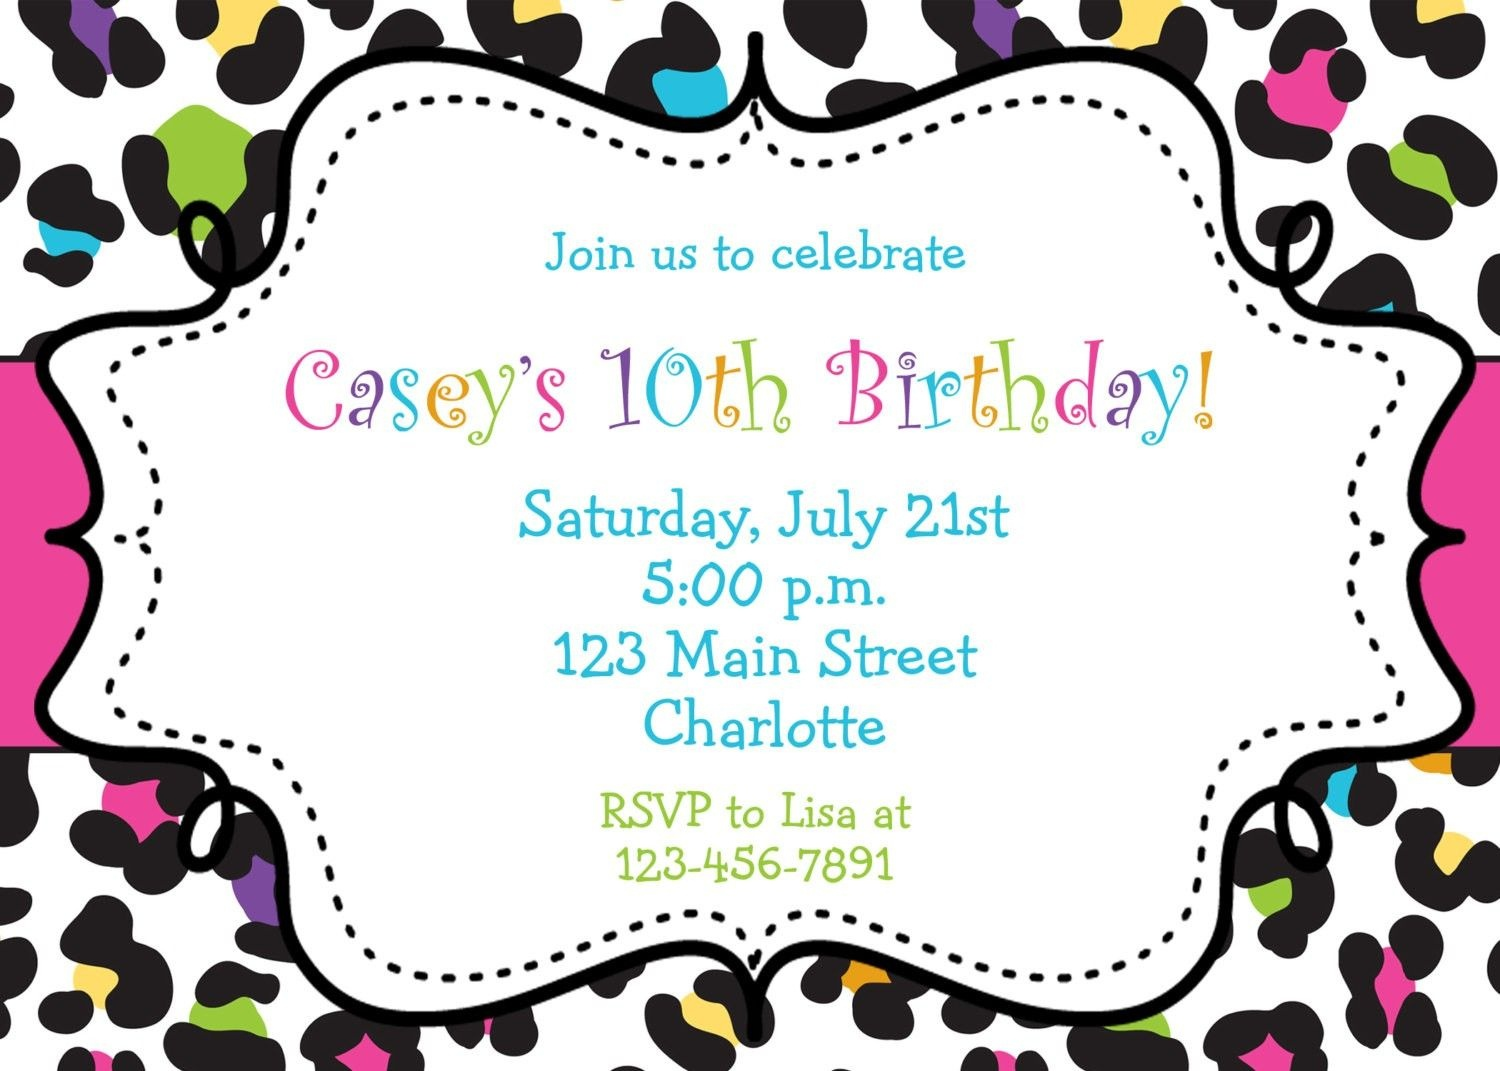 Free Printable Birthday Party Invitations For Girls | Holiday Stuff - Free Printable Cheetah Birthday Invitations